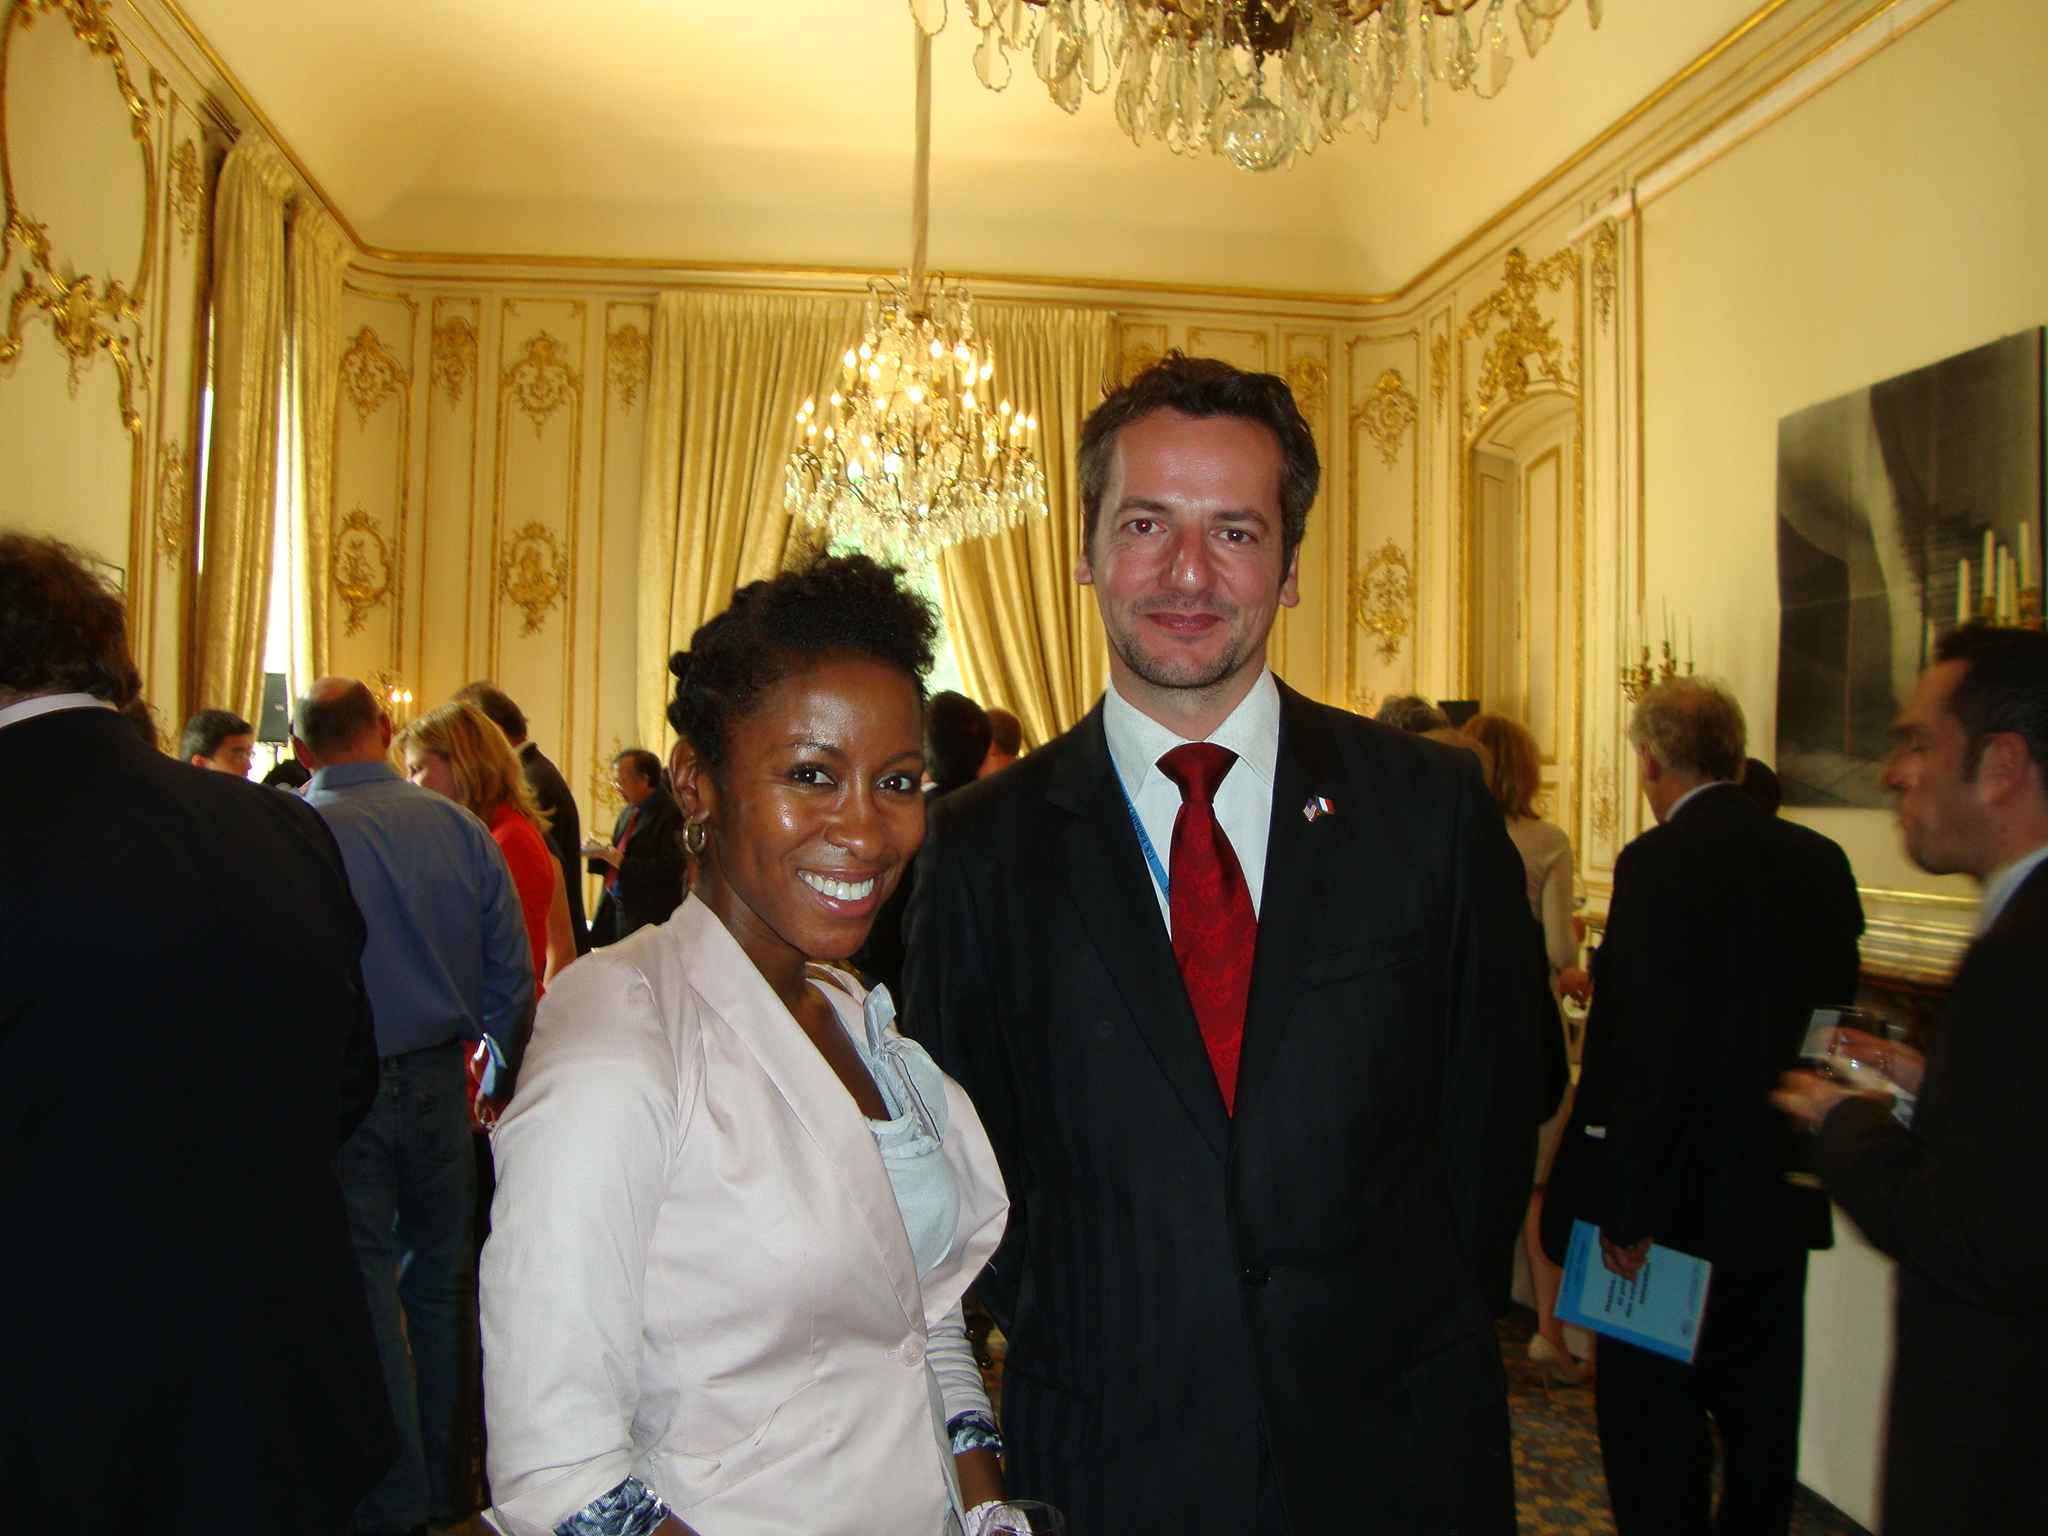 Lashonda McLeod et Laurent Journo du Bureau des affaires agricoles